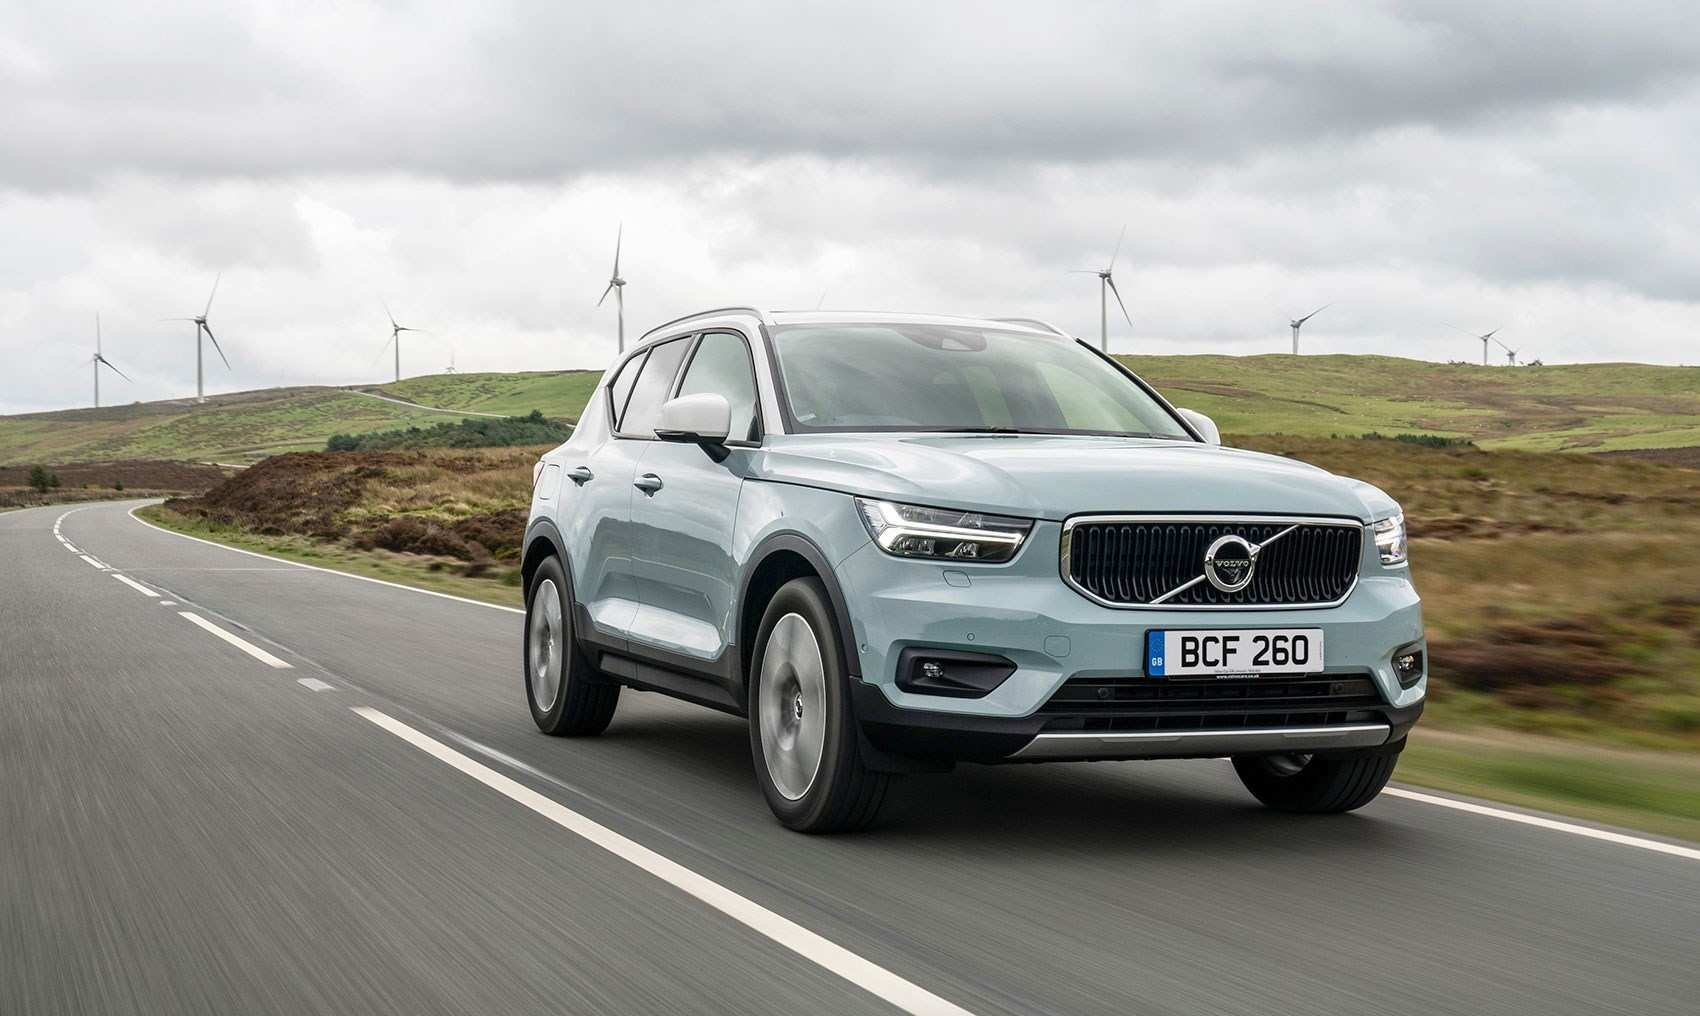 29 Great 2020 Volvo Xc40 Hybrid Release Date Pictures with 2020 Volvo Xc40 Hybrid Release Date